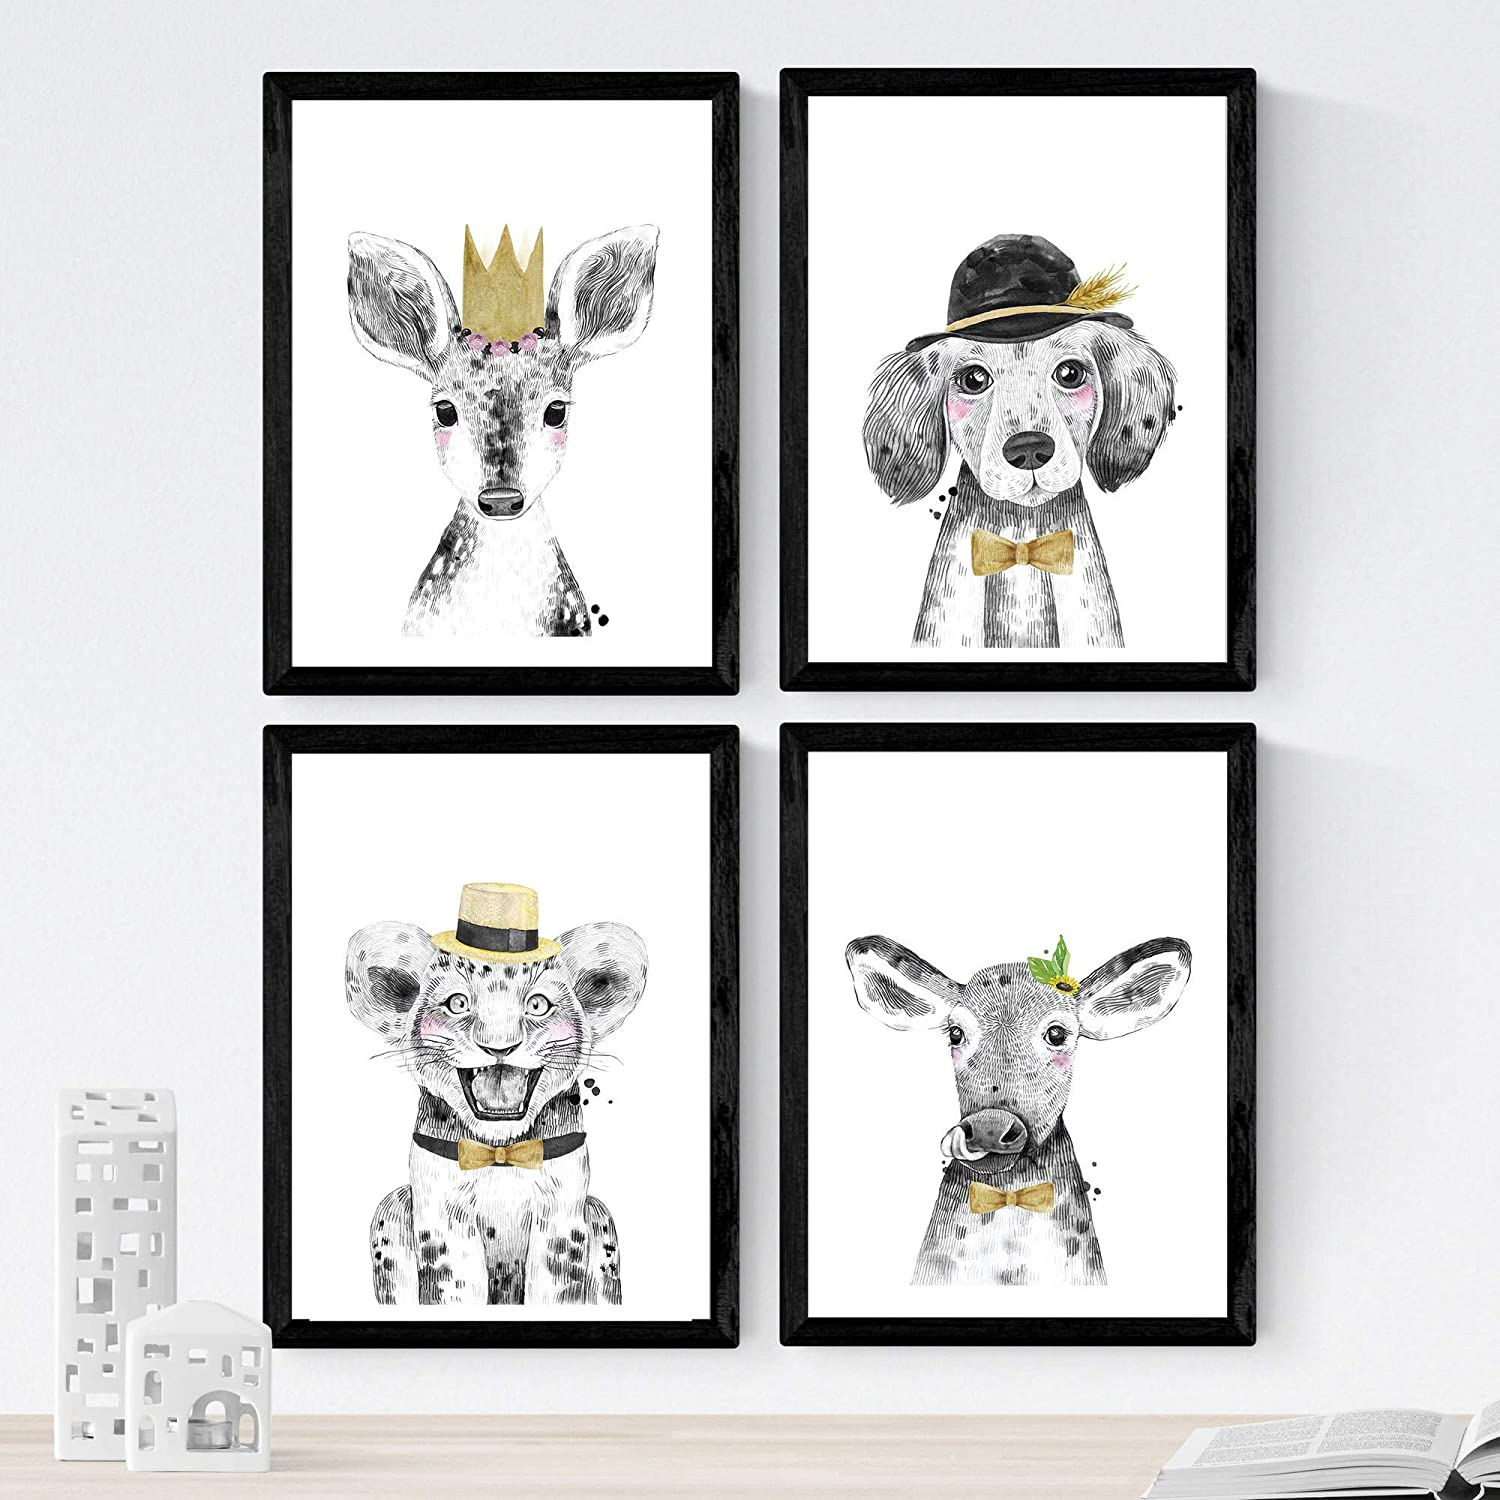 Nacnic Set of 4 Sheets of Animals Children Tones Yellows in 8'x11' Size, Poster Paper 250 gr. Frameless